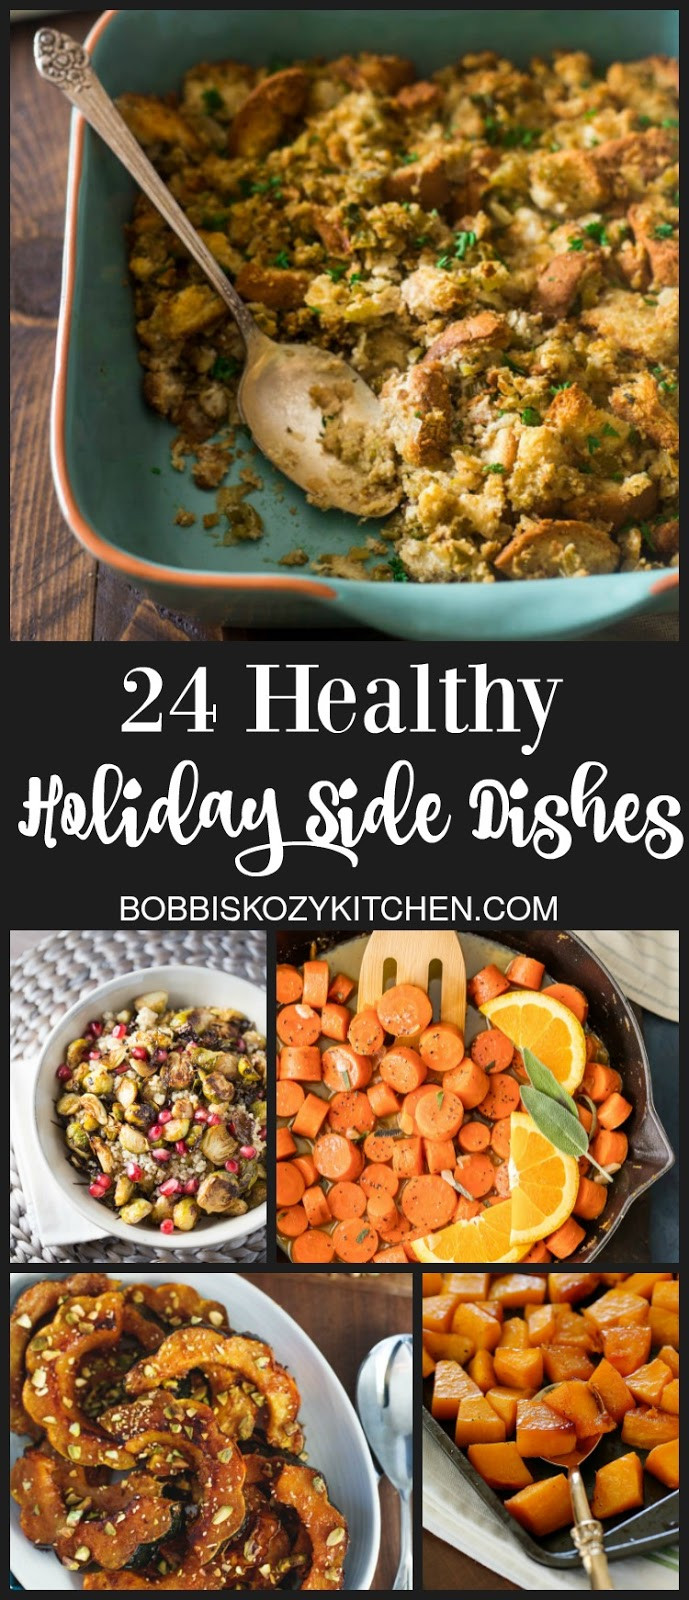 Healthy Holiday Side Dishes  24 Healthy Holiday Side Dishes